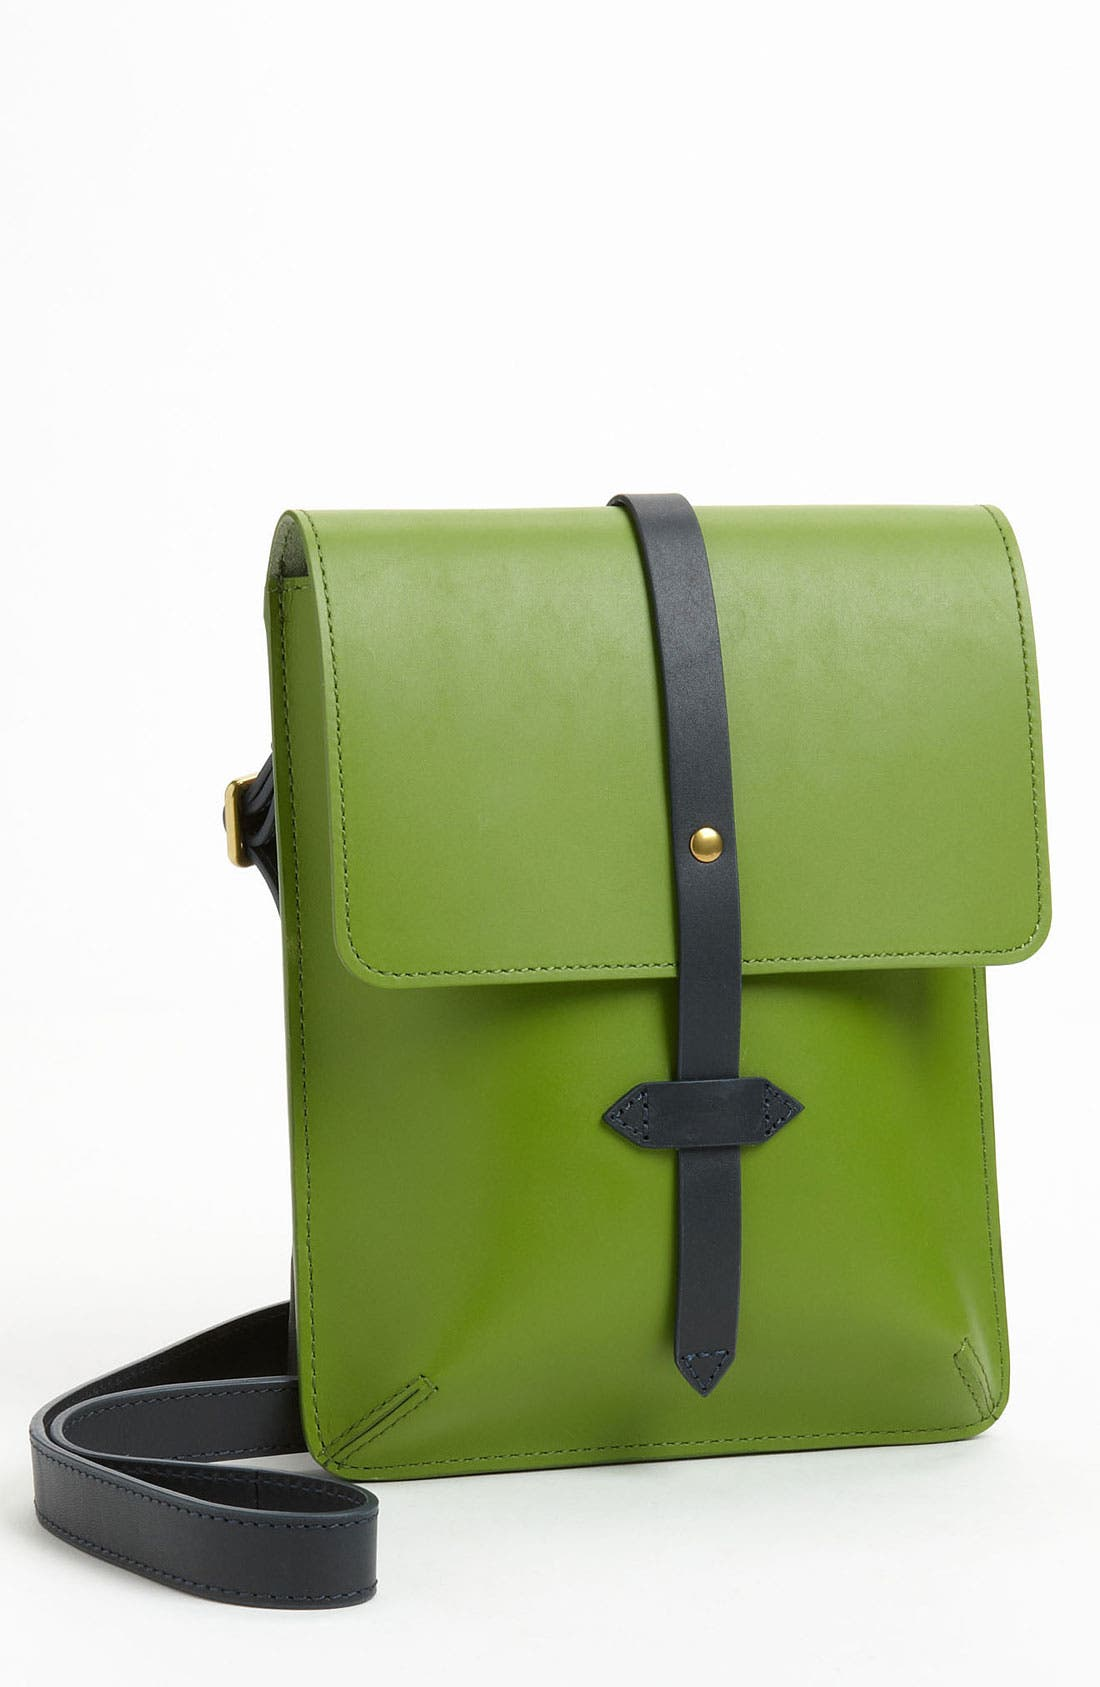 Alternate Image 1 Selected - IIIBeCa By Joy Gryson 'Chambers Street' Crossbody Bag